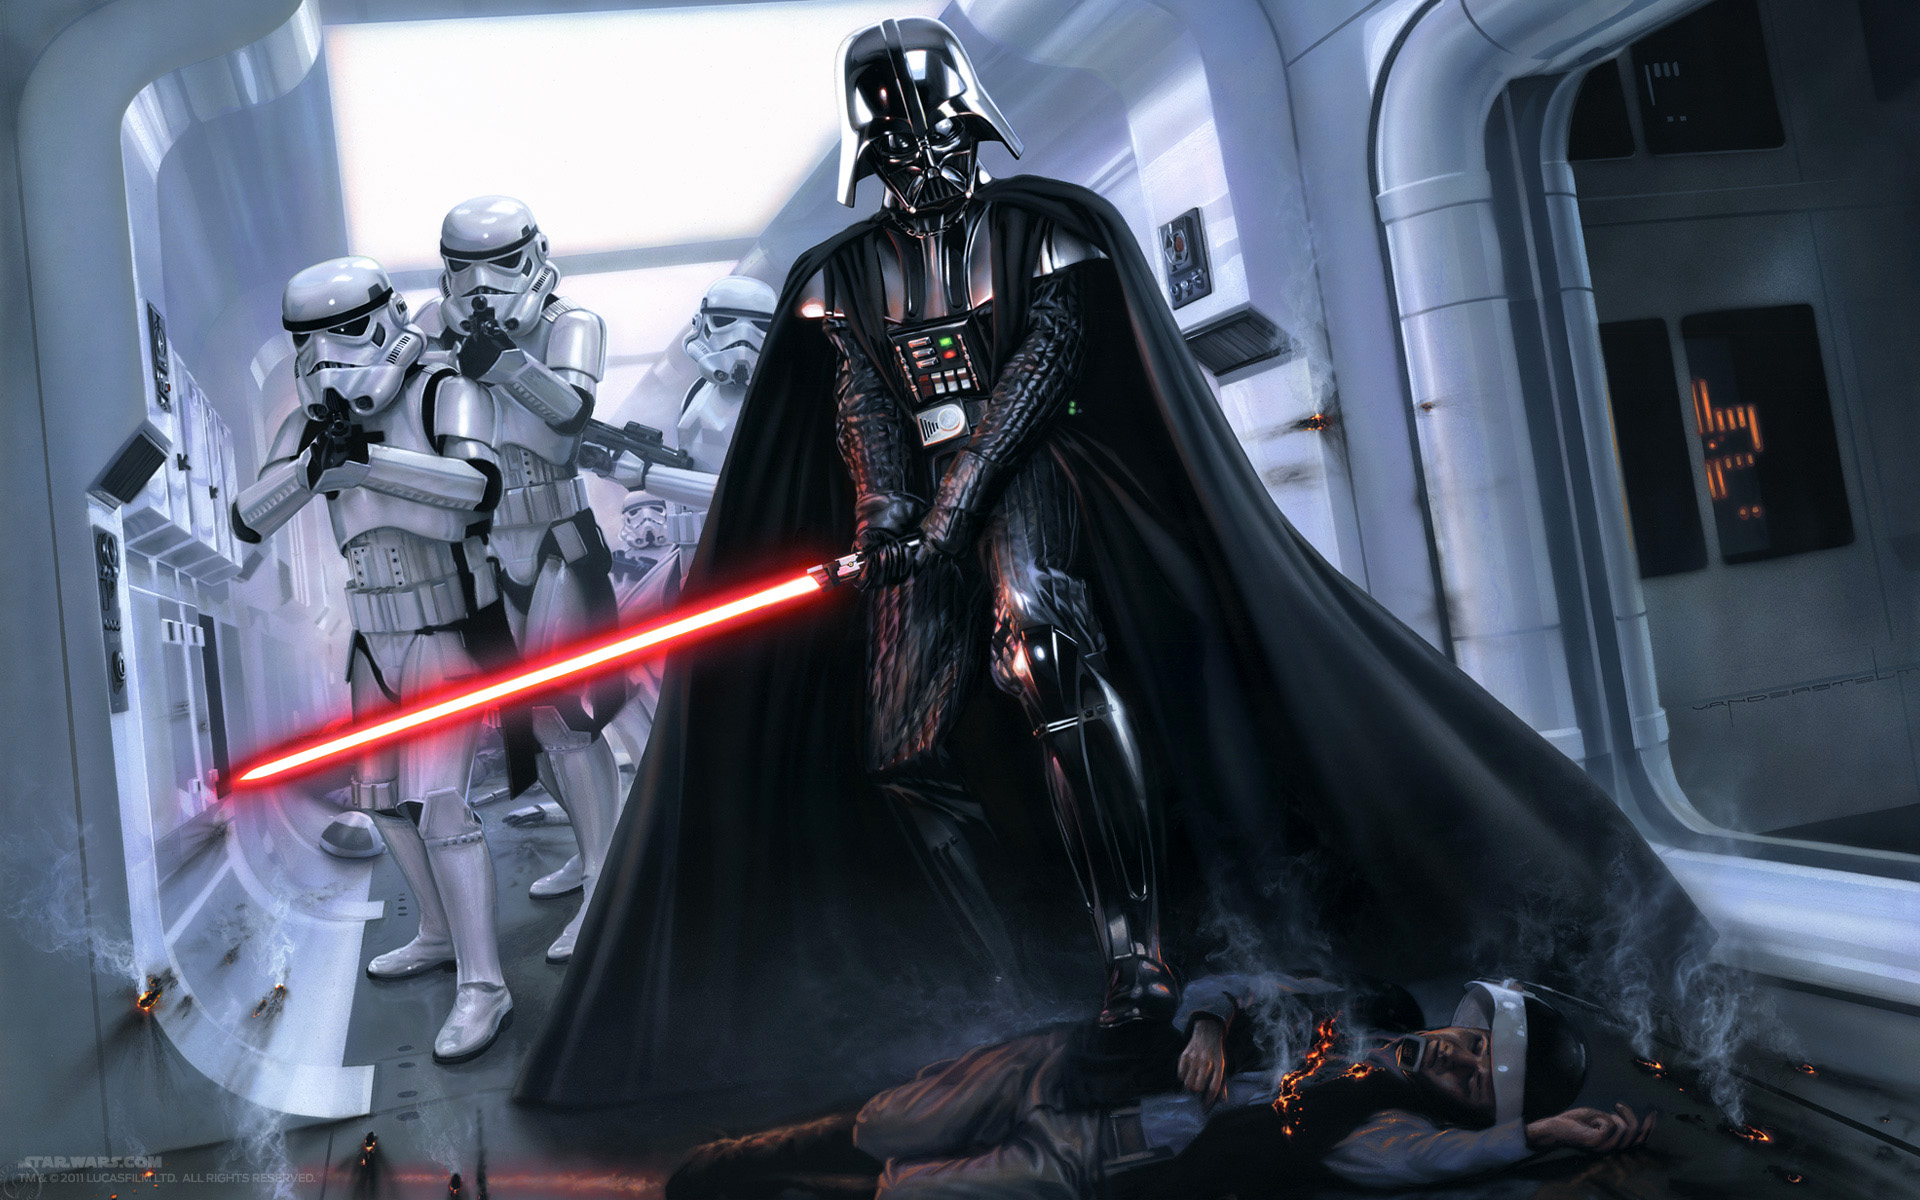 ¿Regresa Darth Vader a 'Star Wars'?